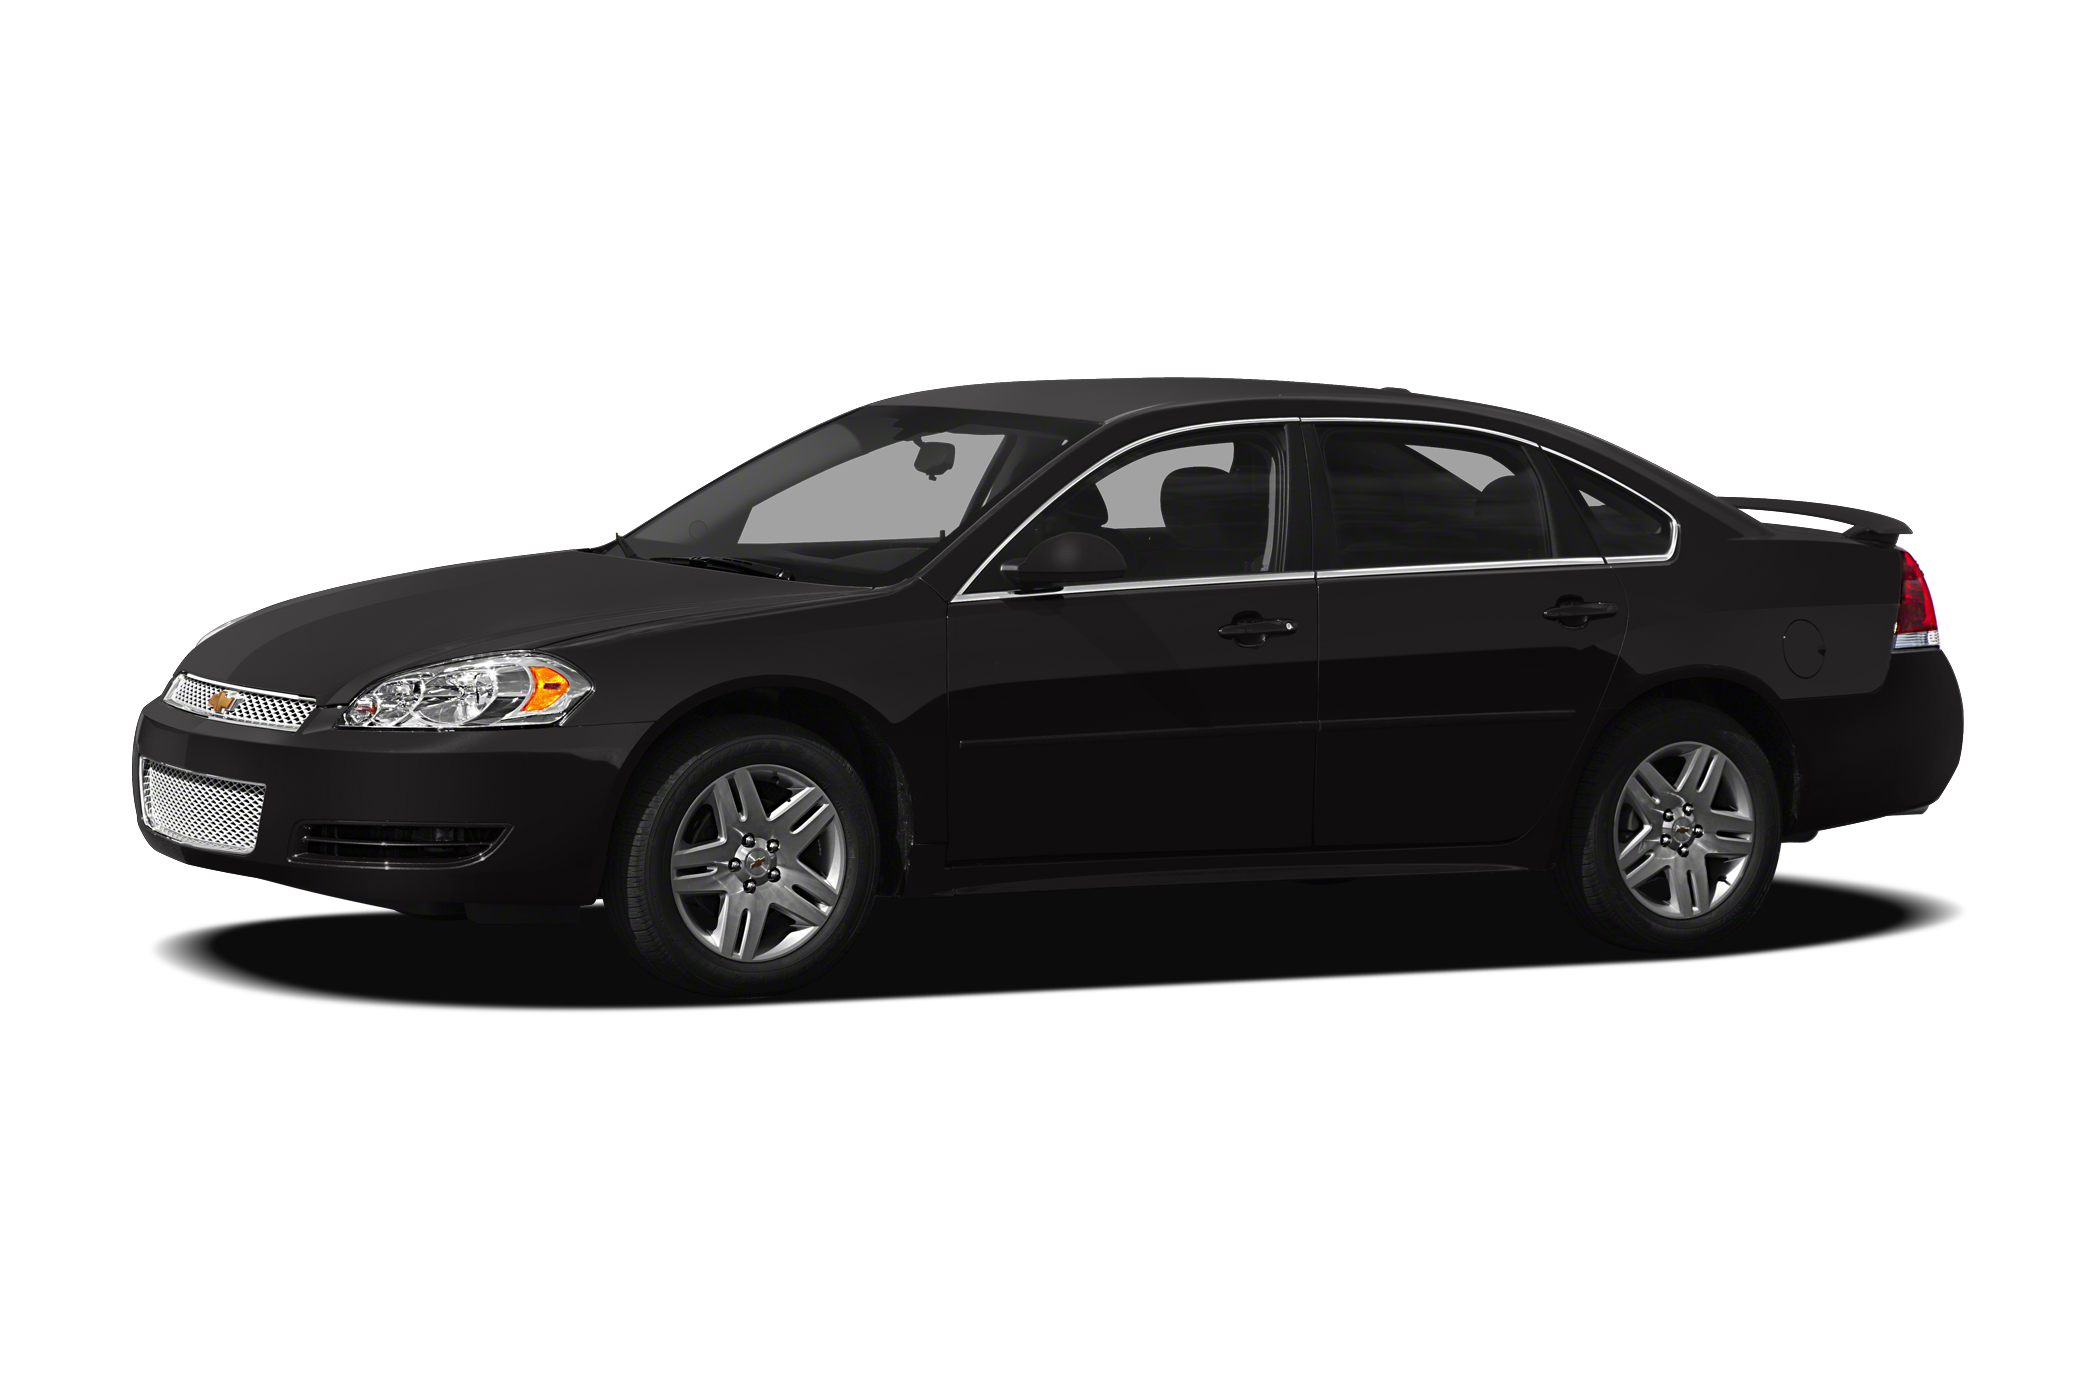 2012 Chevrolet Impala LT Sedan for sale in Rochester for $12,965 with 50,200 miles.